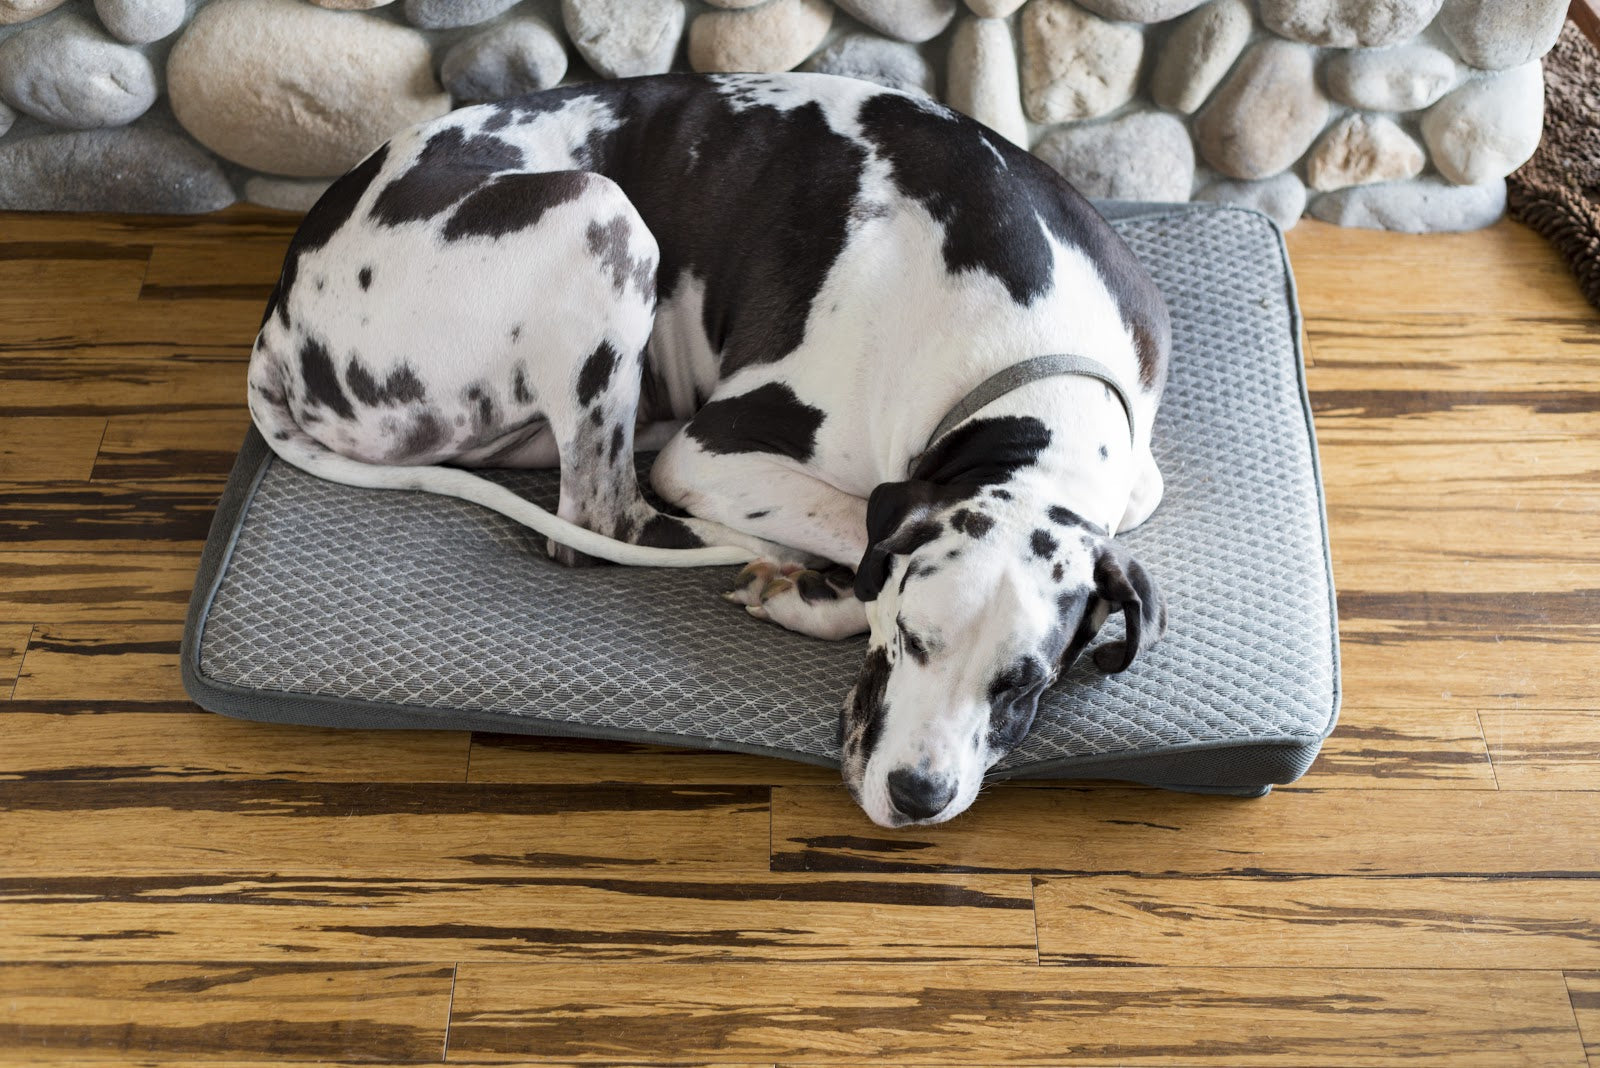 Hip Dysplasia in Dogs: Large dog resting on bed